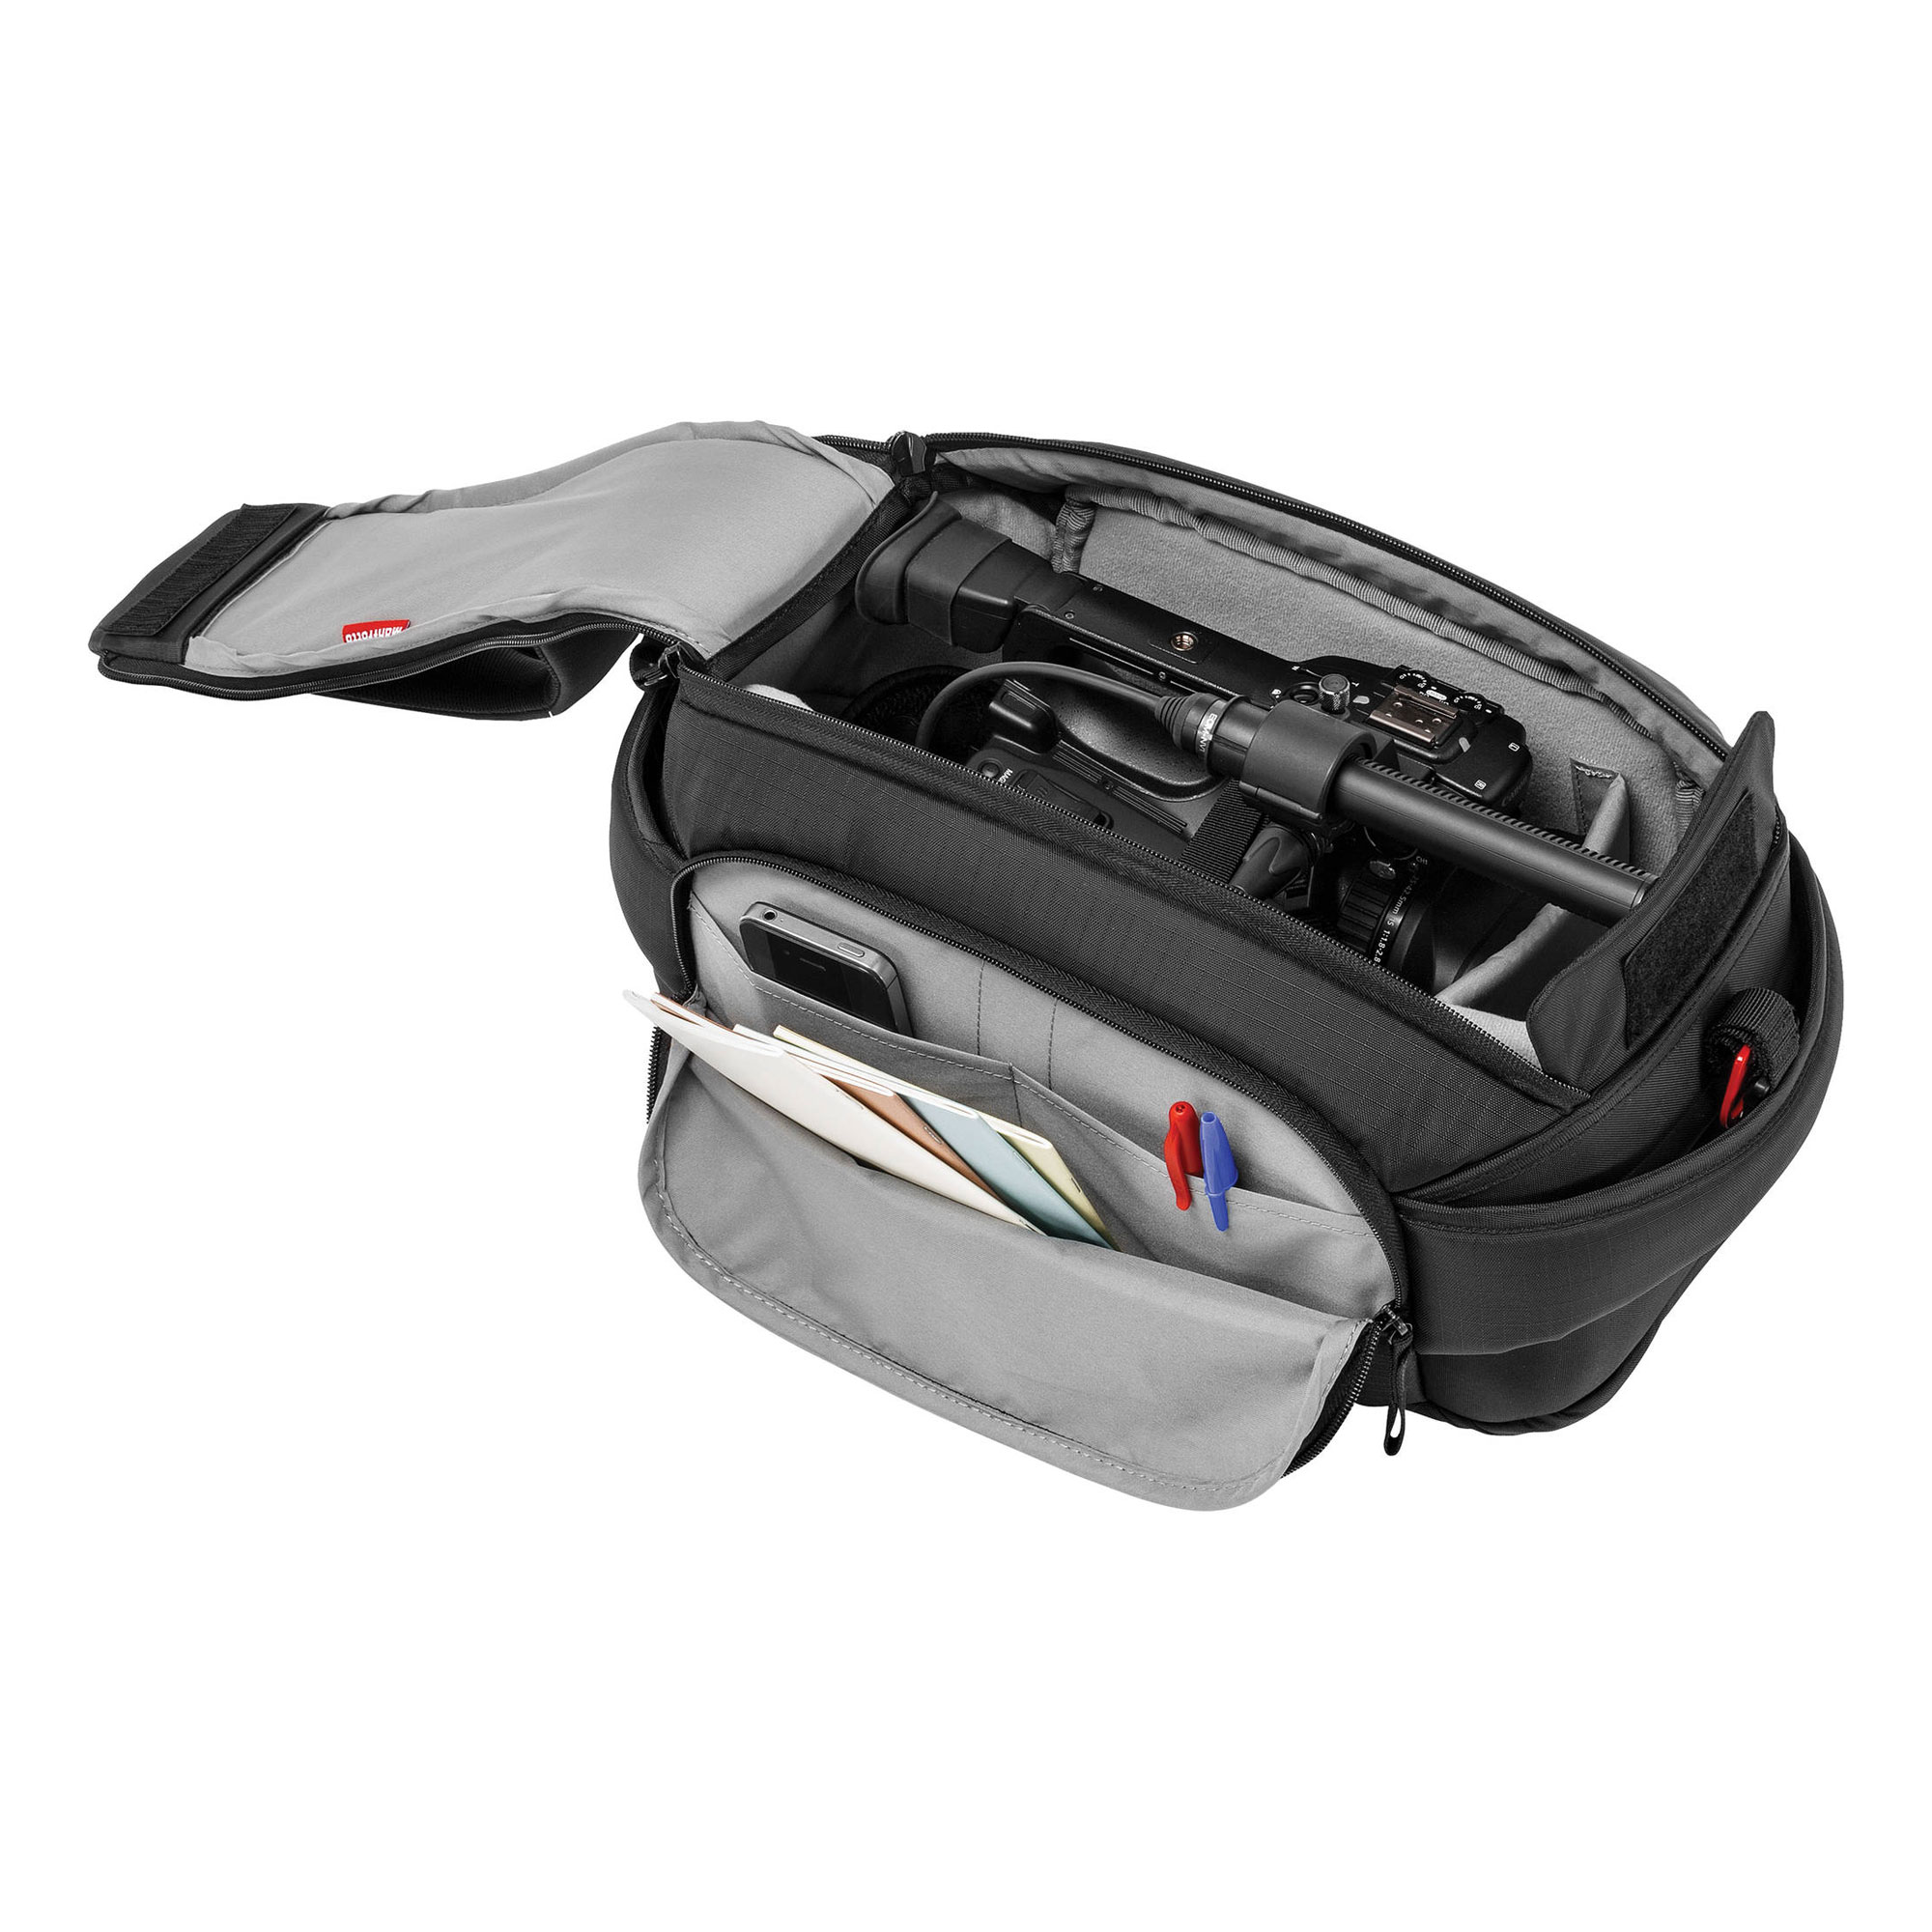 PL-CC-191 Pro Light Video Camera Case Black